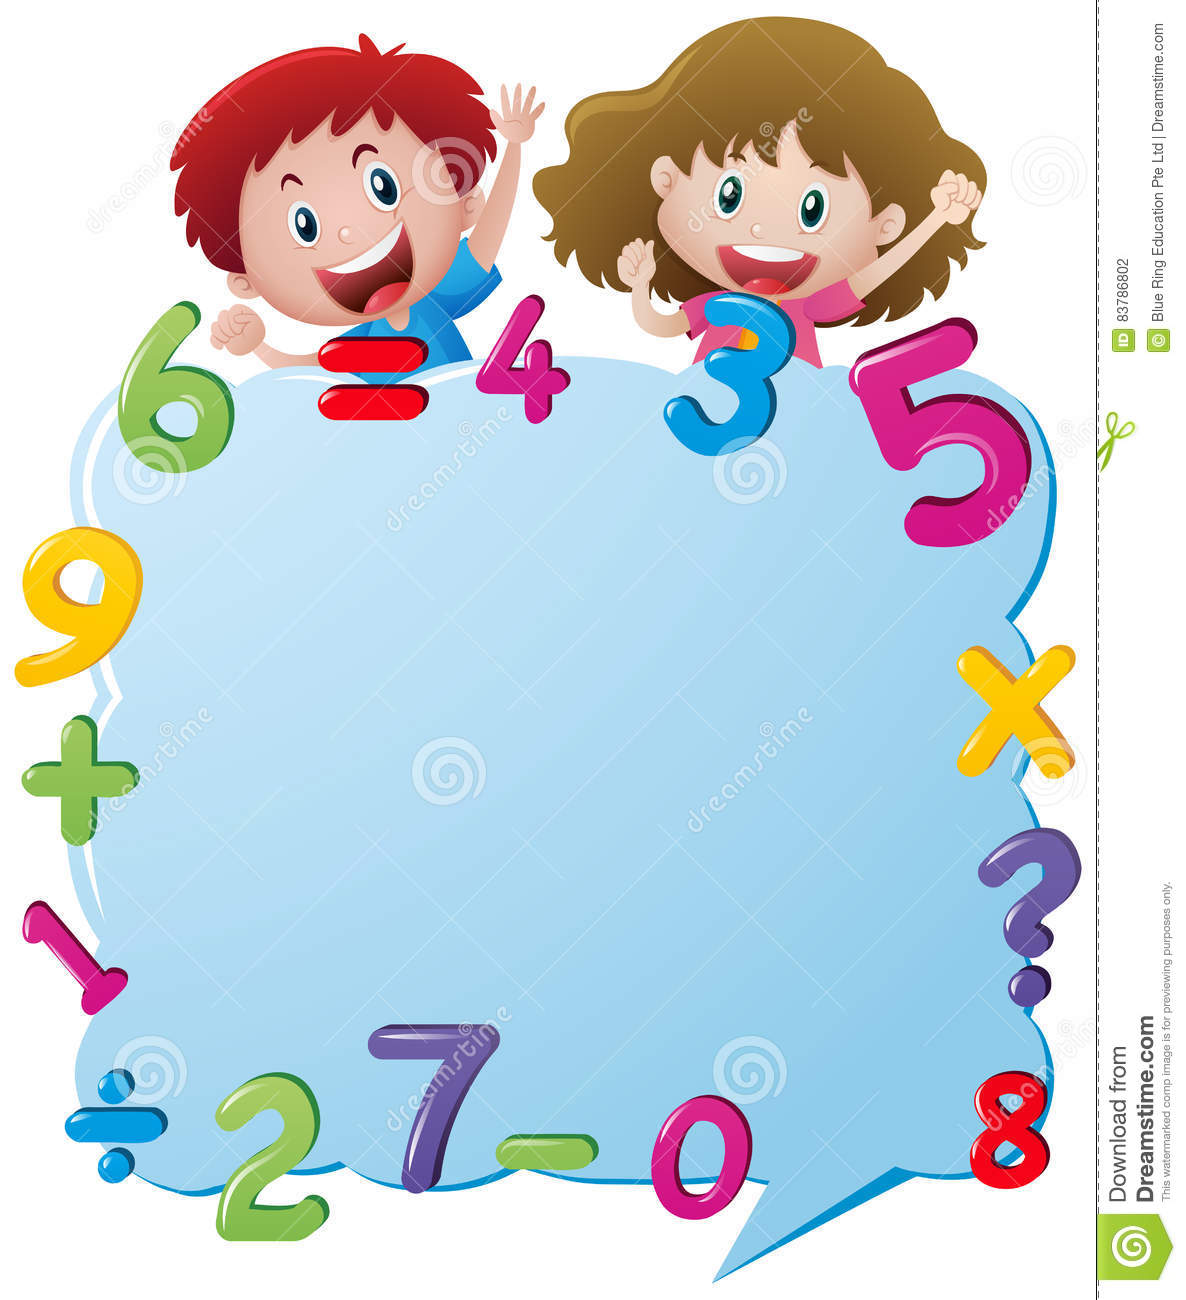 Border Template With Kids And Numbers Stock Vector.